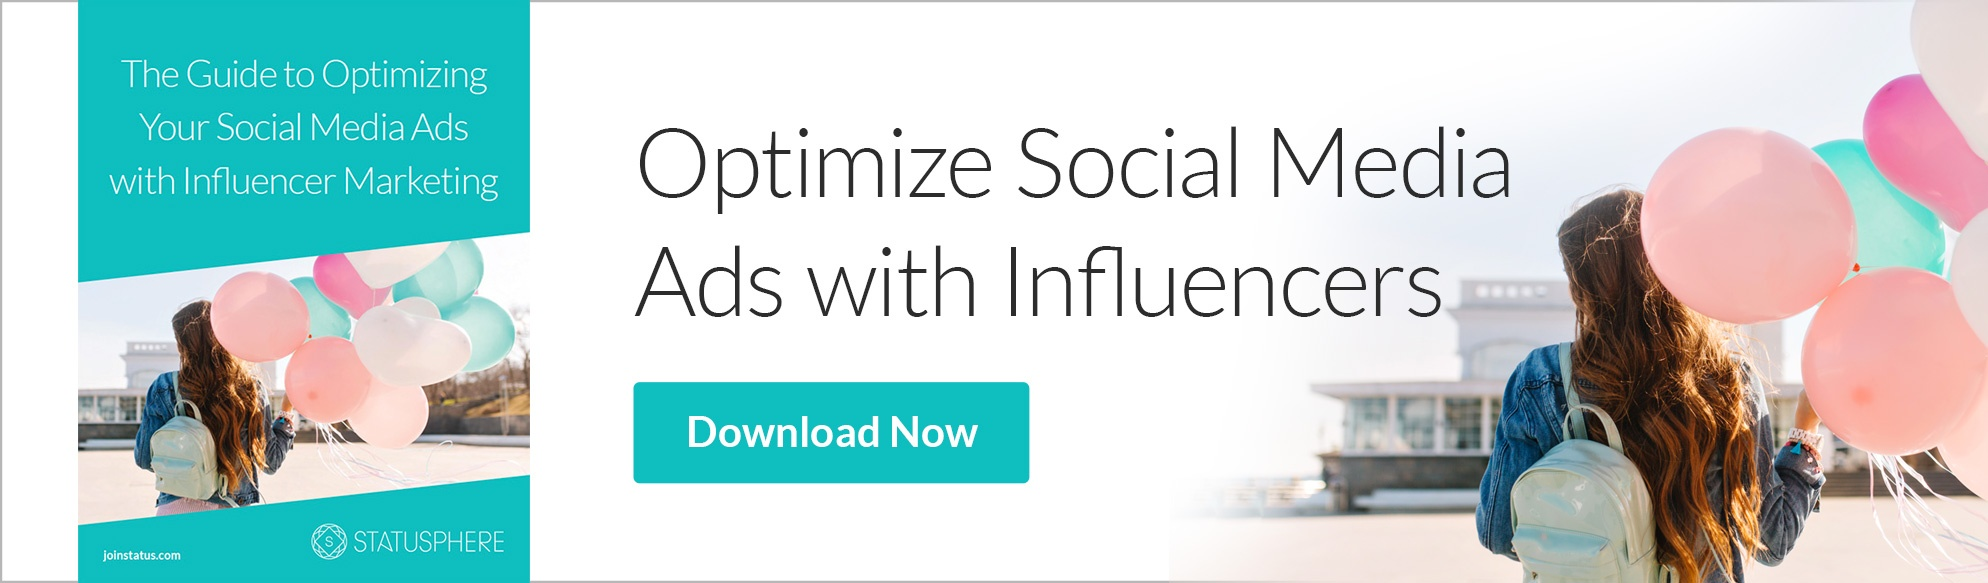 optimizing social media ads